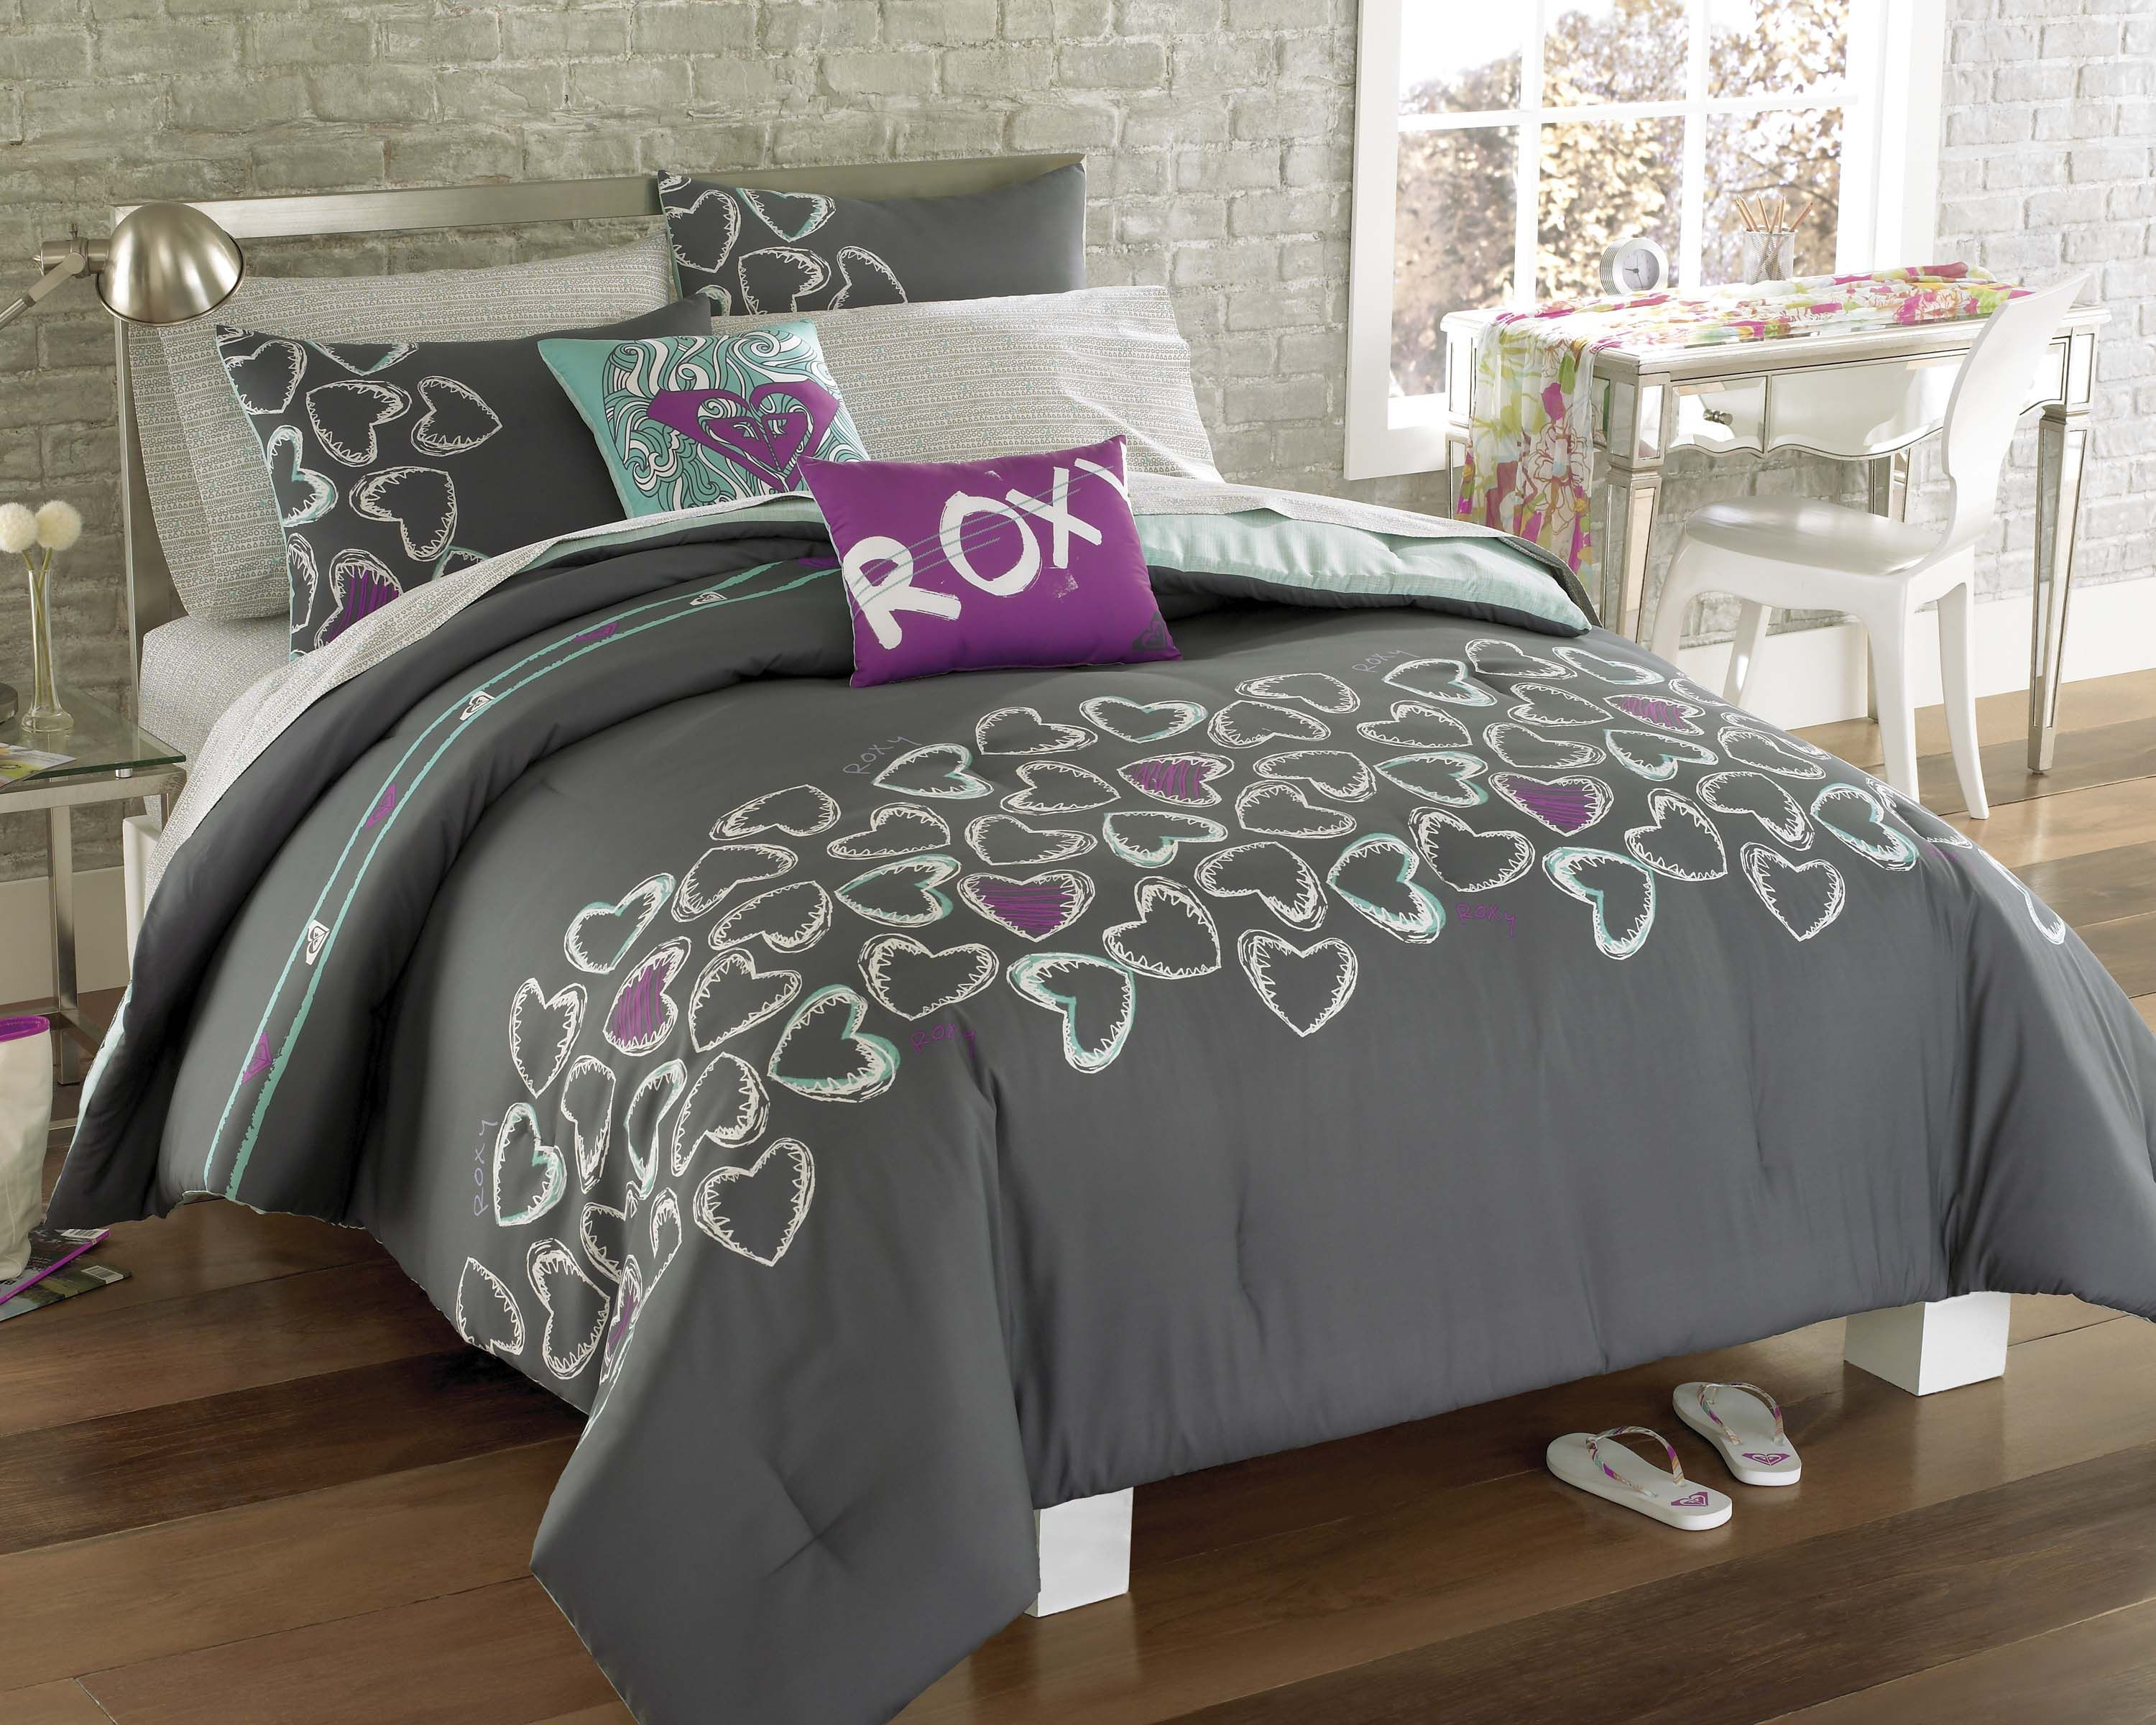 Roxy bedding heart and soul comforter sets bedding collections bed bath macy s bridal and wedding registry